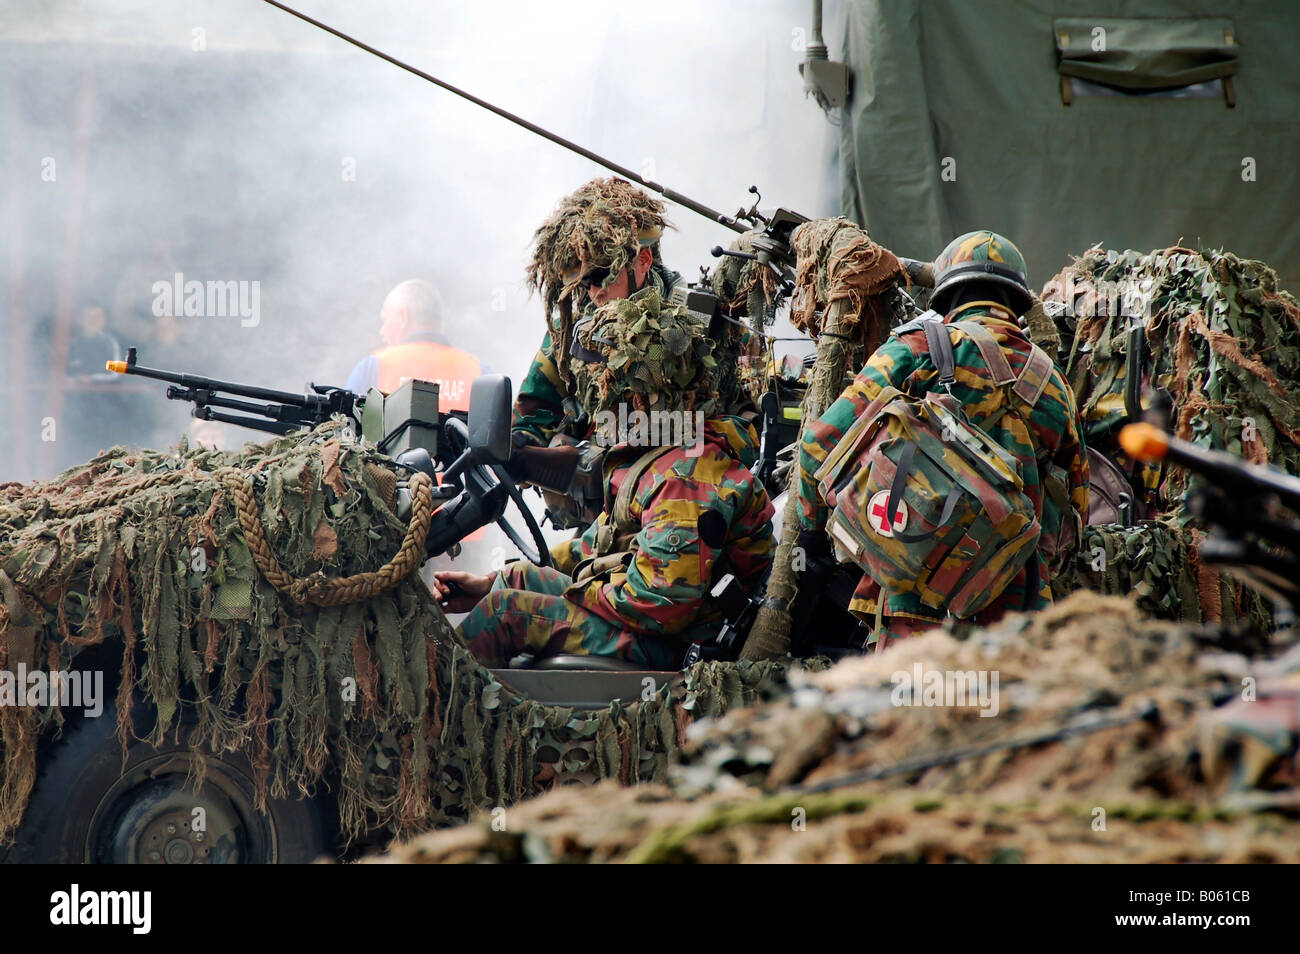 A recce or scout team of the Belgian Army in action. Stock Photo